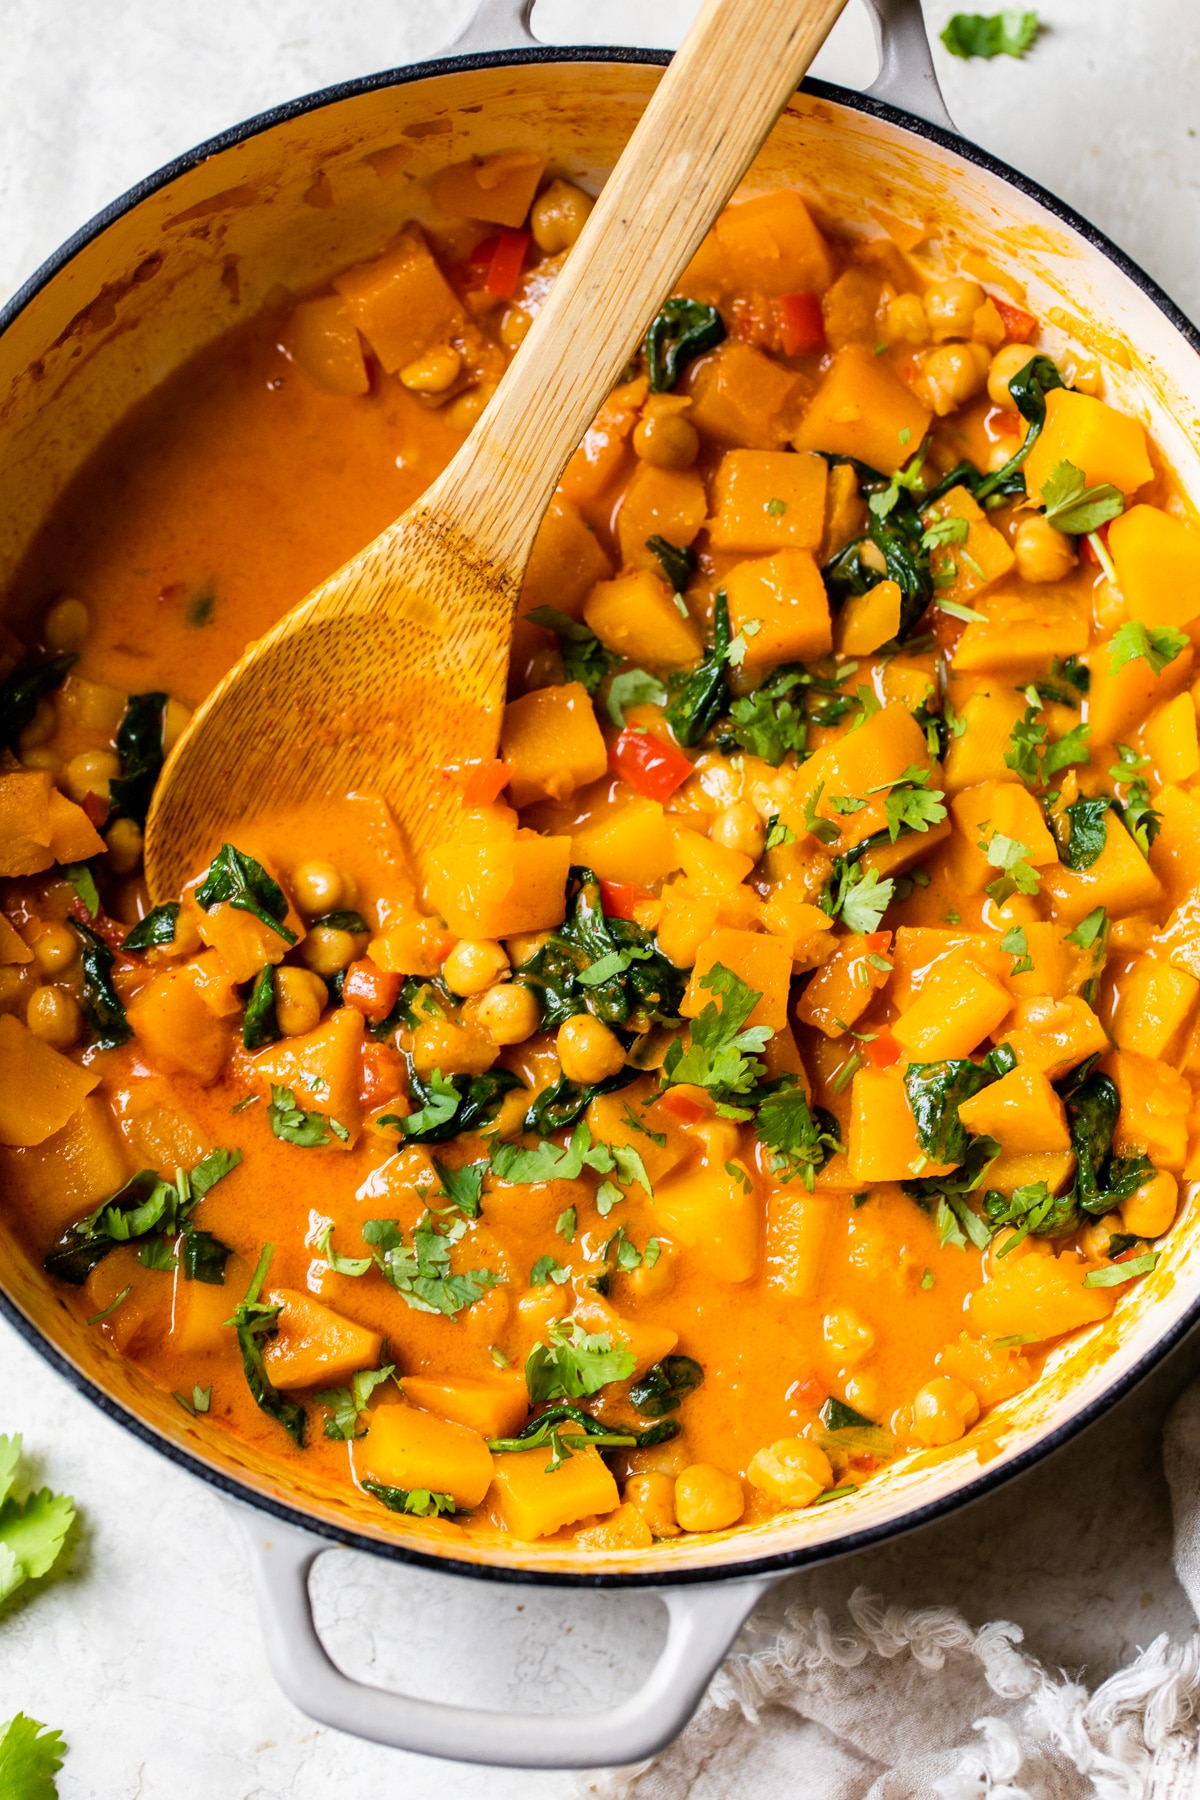 butternut squash and chickpeas in a skillet